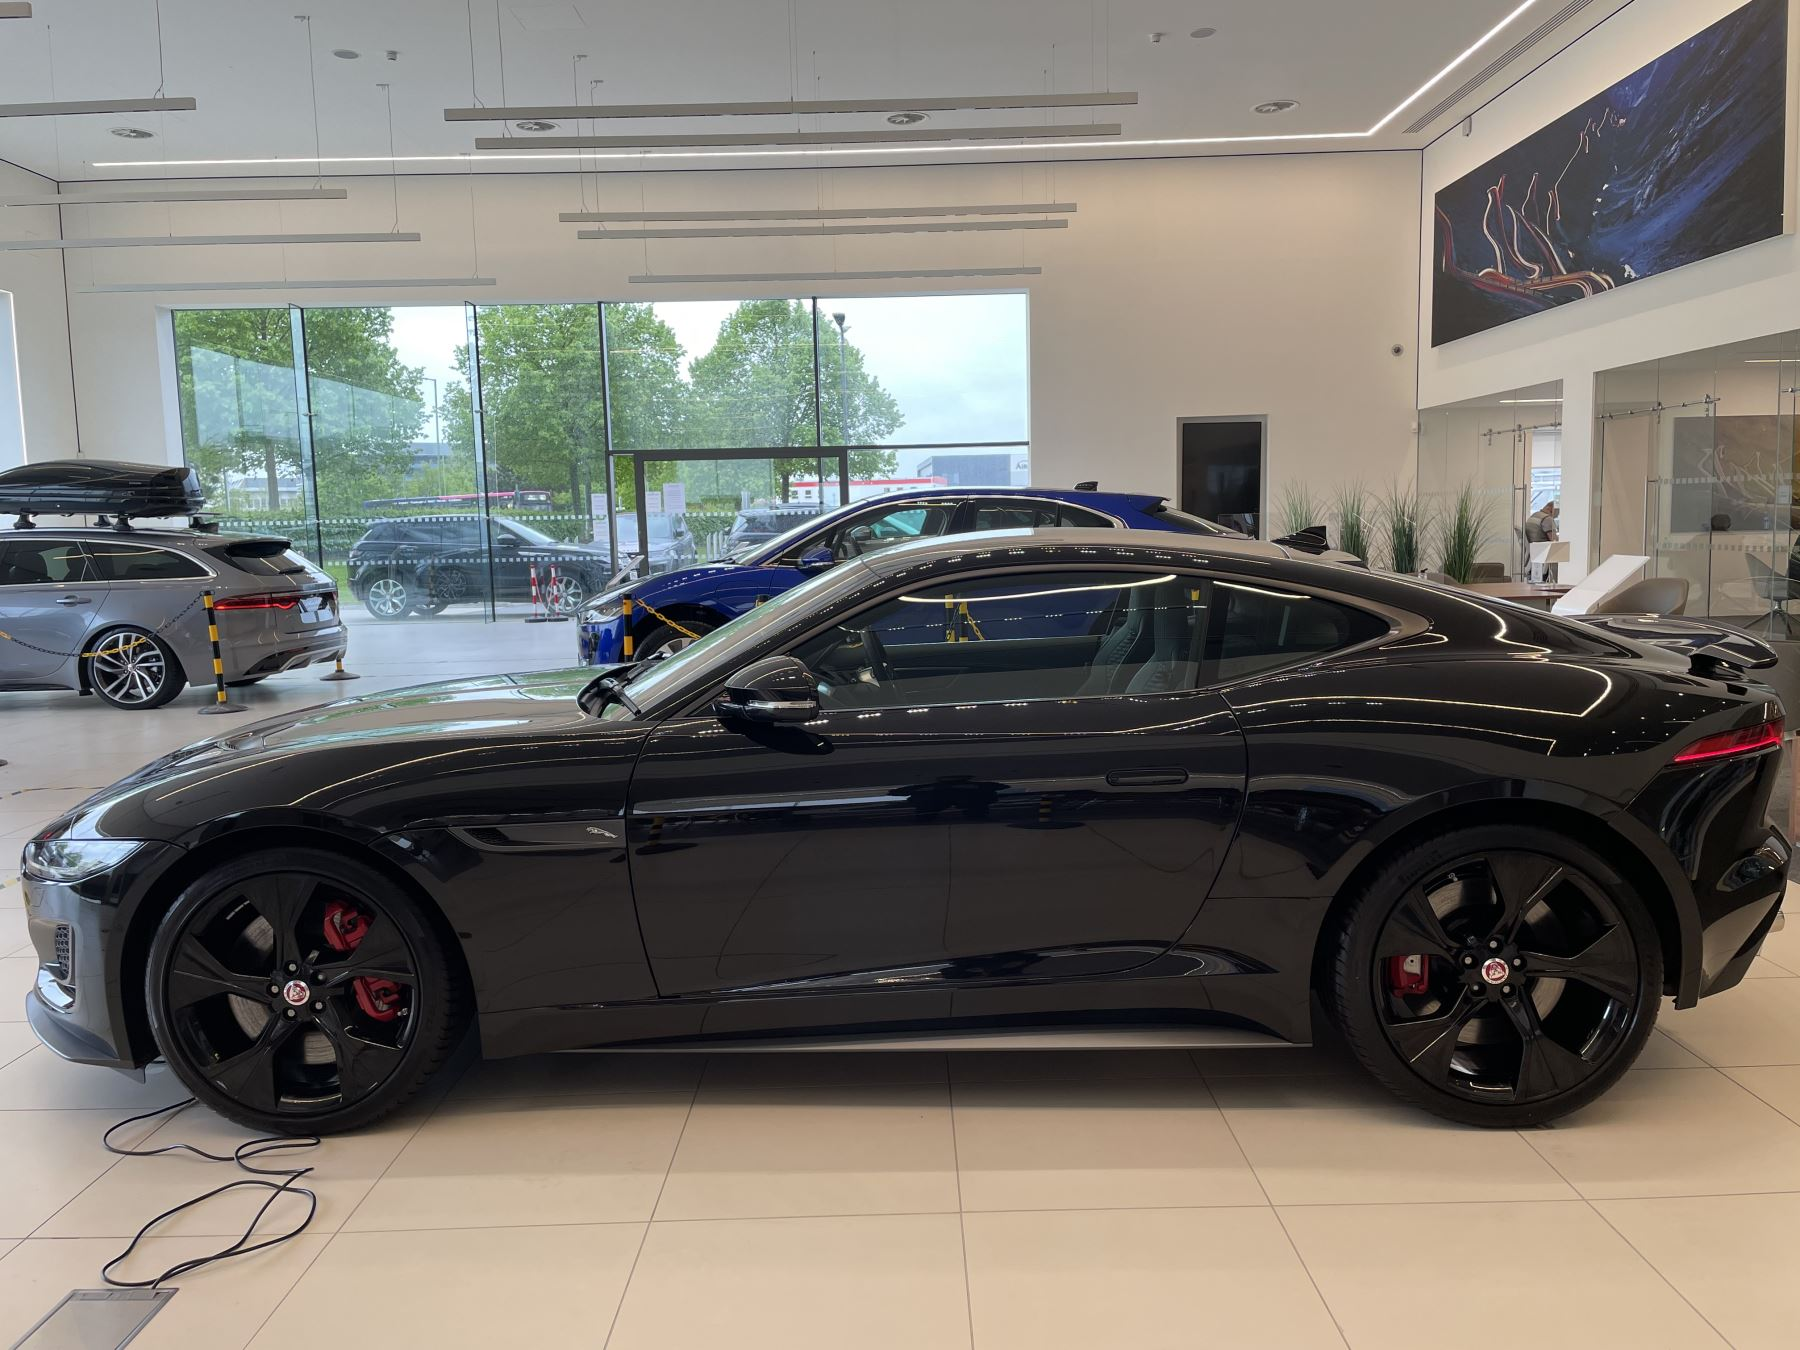 Jaguar F-TYPE 5.0 P450 S/C V8 First Edition AWD SPECIAL EDITIONS image 2